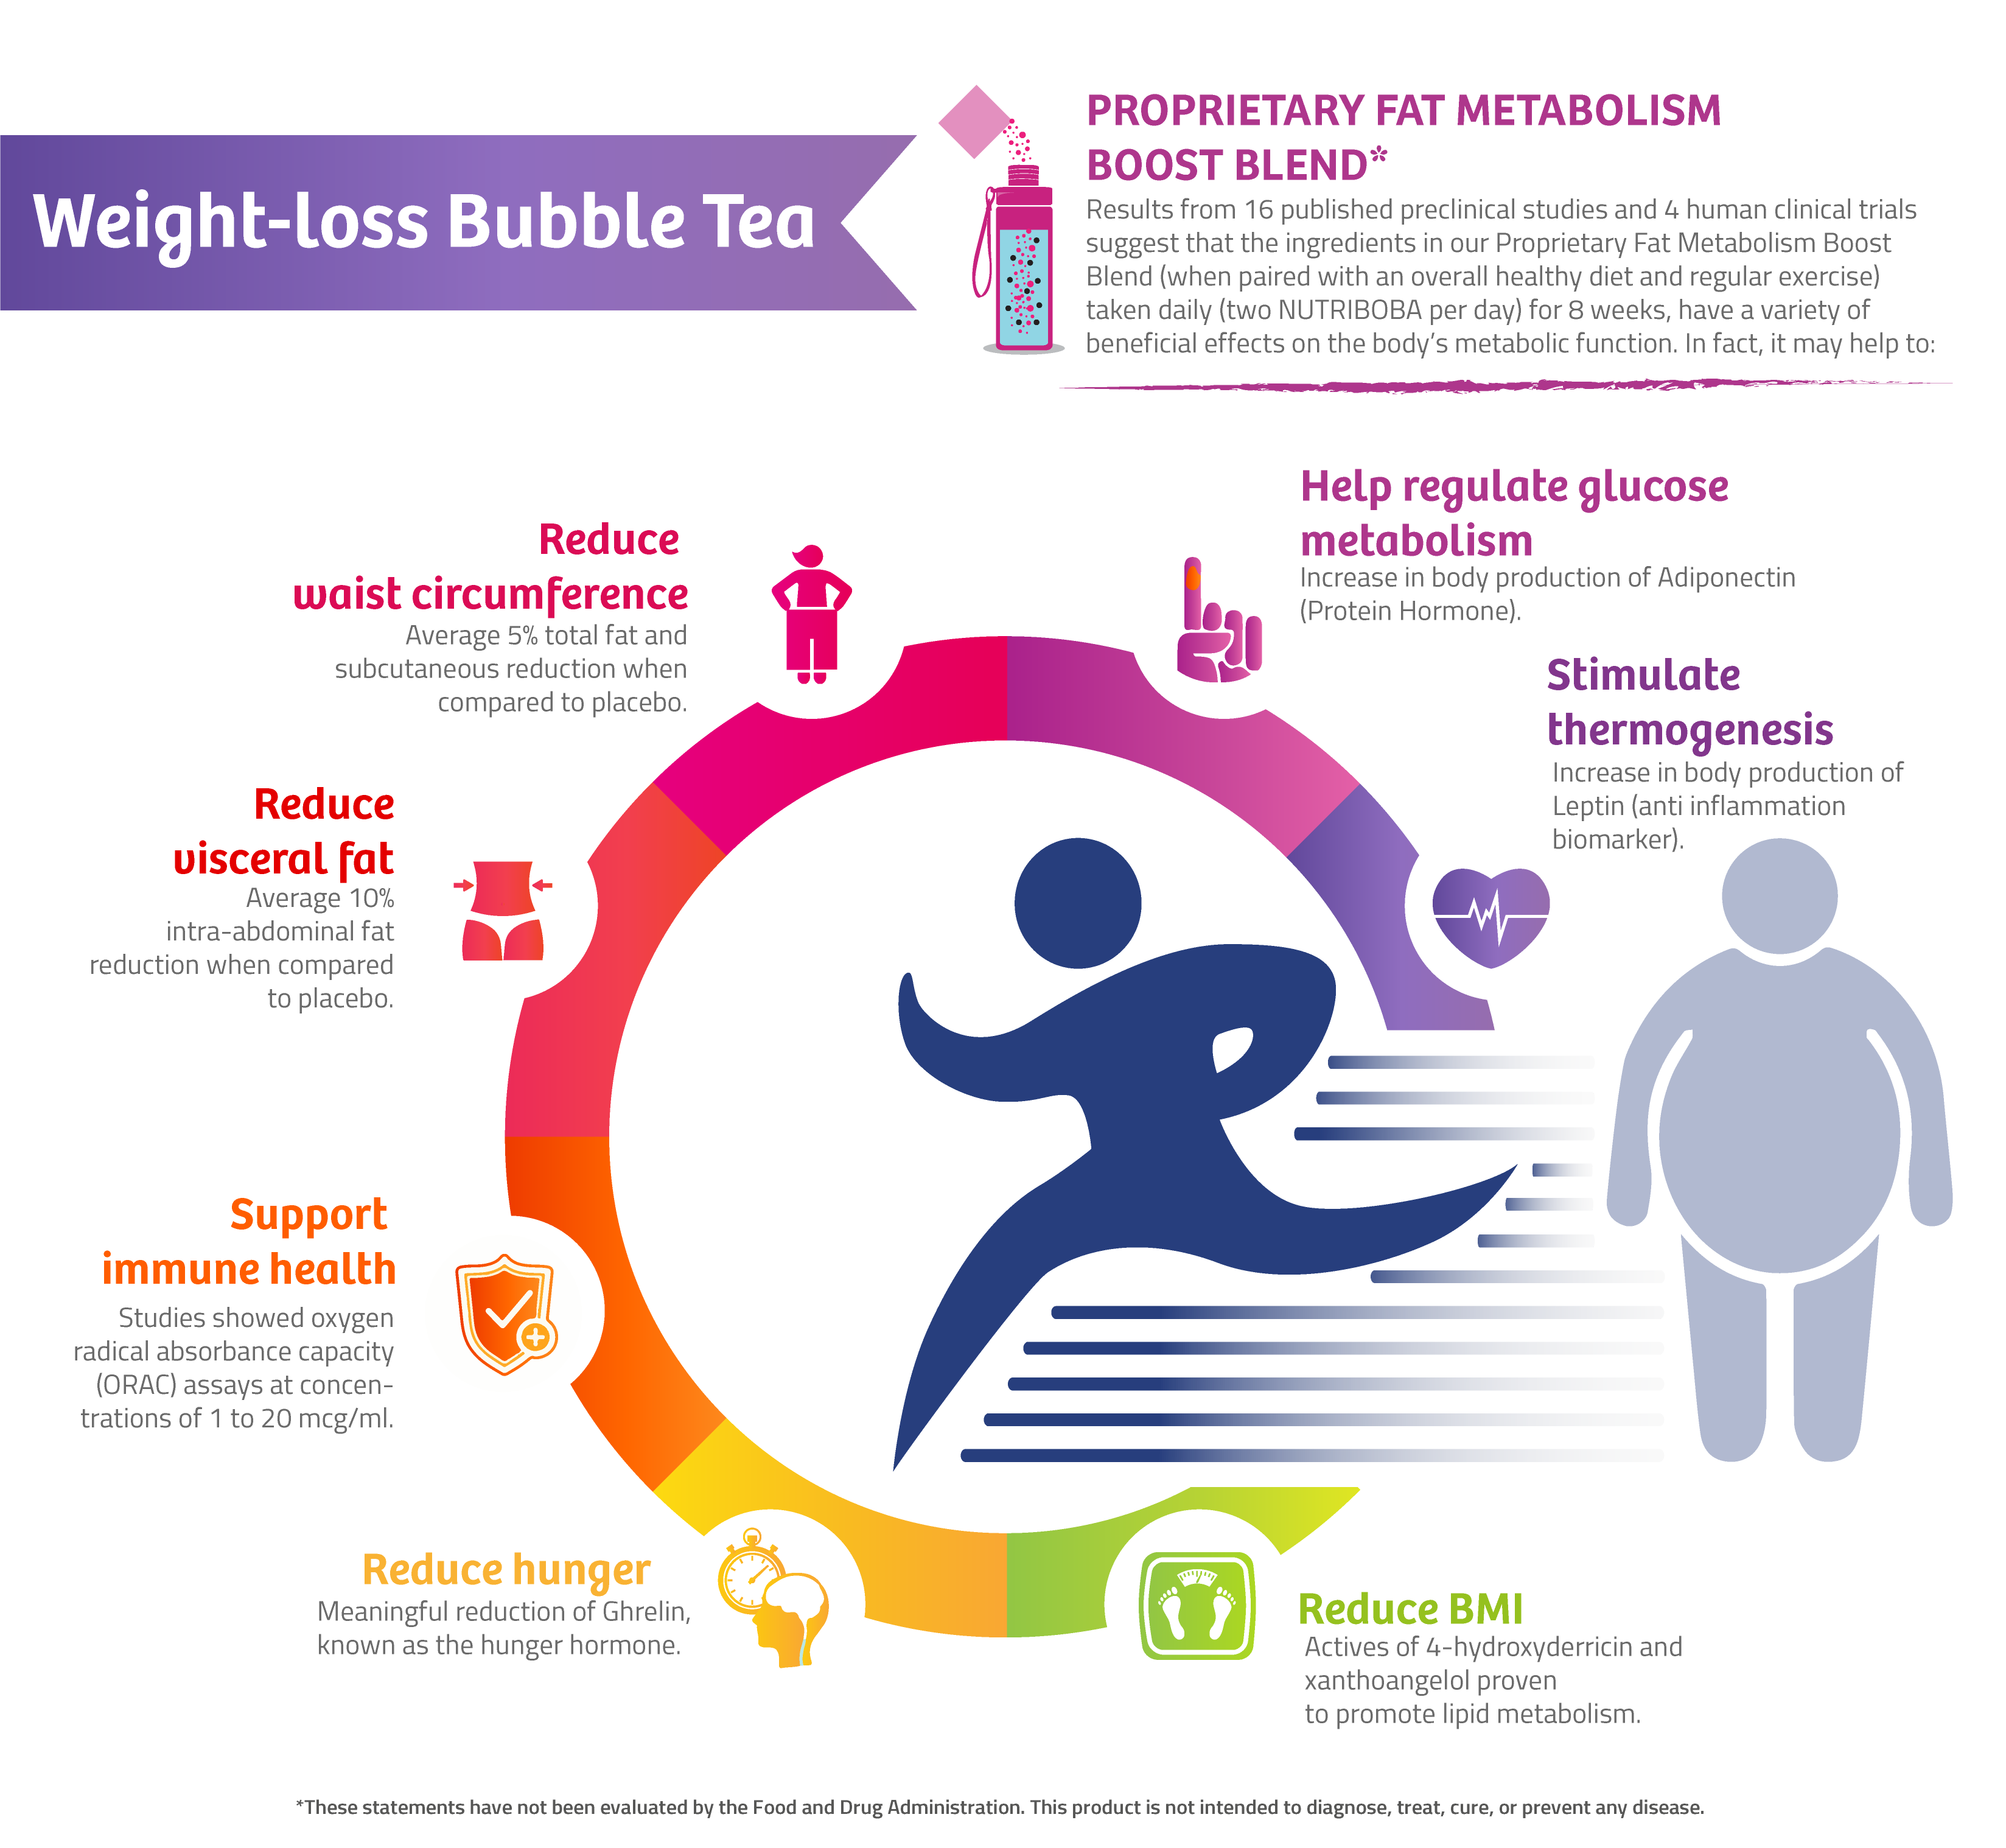 WEIGHT LOSS BUBBLE TEA HUNGER REDUCTION GRAPH CLINICAL STUDIES